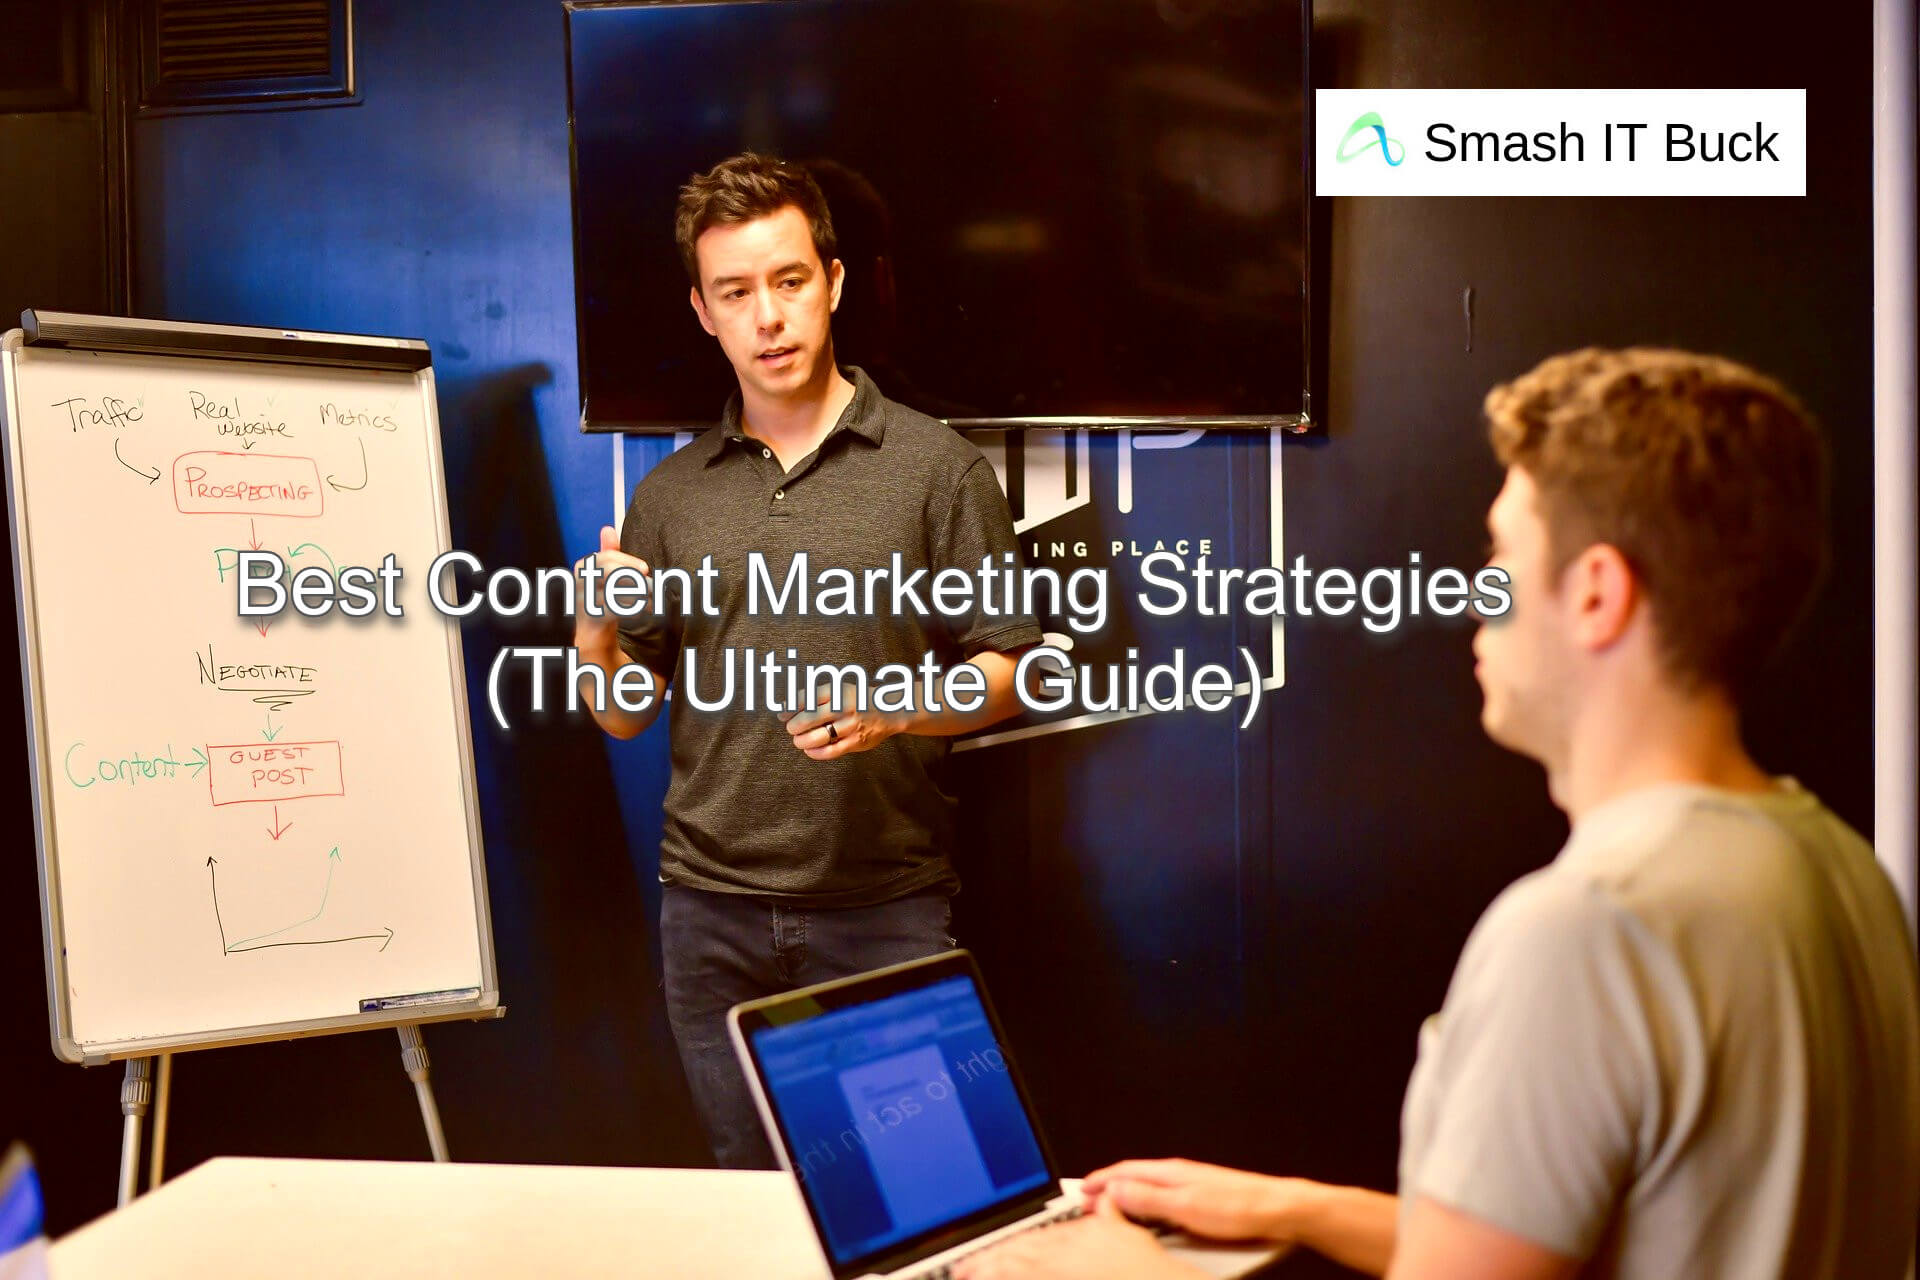 Best Content Marketing Strategies to use in 2021